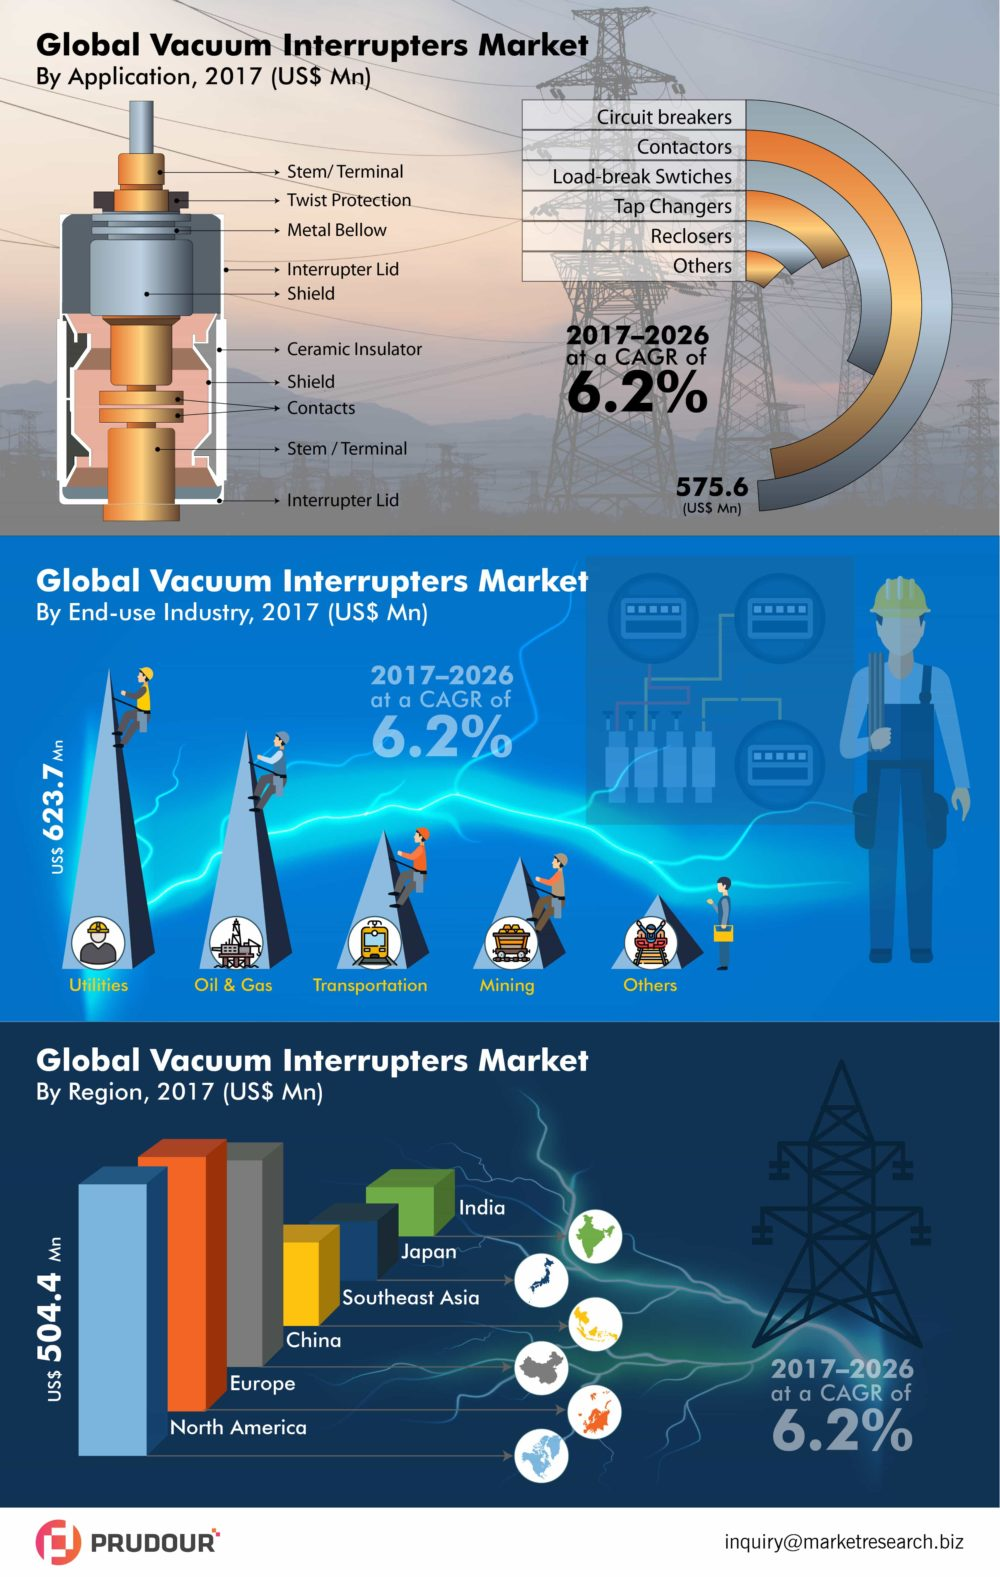 To Register CAGR Of 6.2%: Global Vacuum Interrupters Market Expected Significant CAGR of 6.2% Between 2017 to 2026